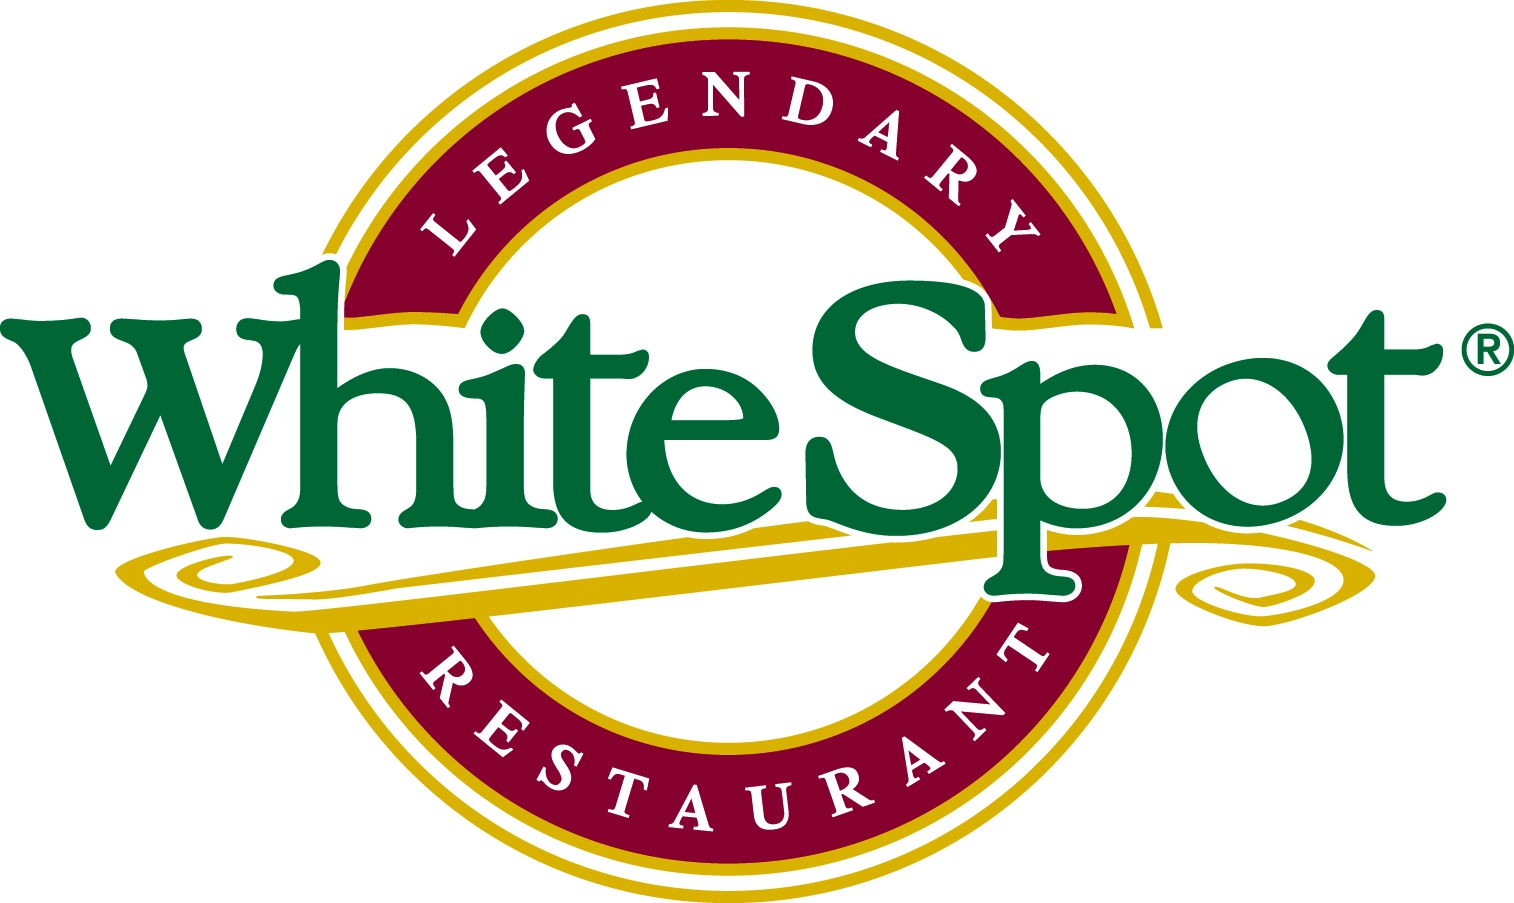 Whitespot, Legendary Restaurant